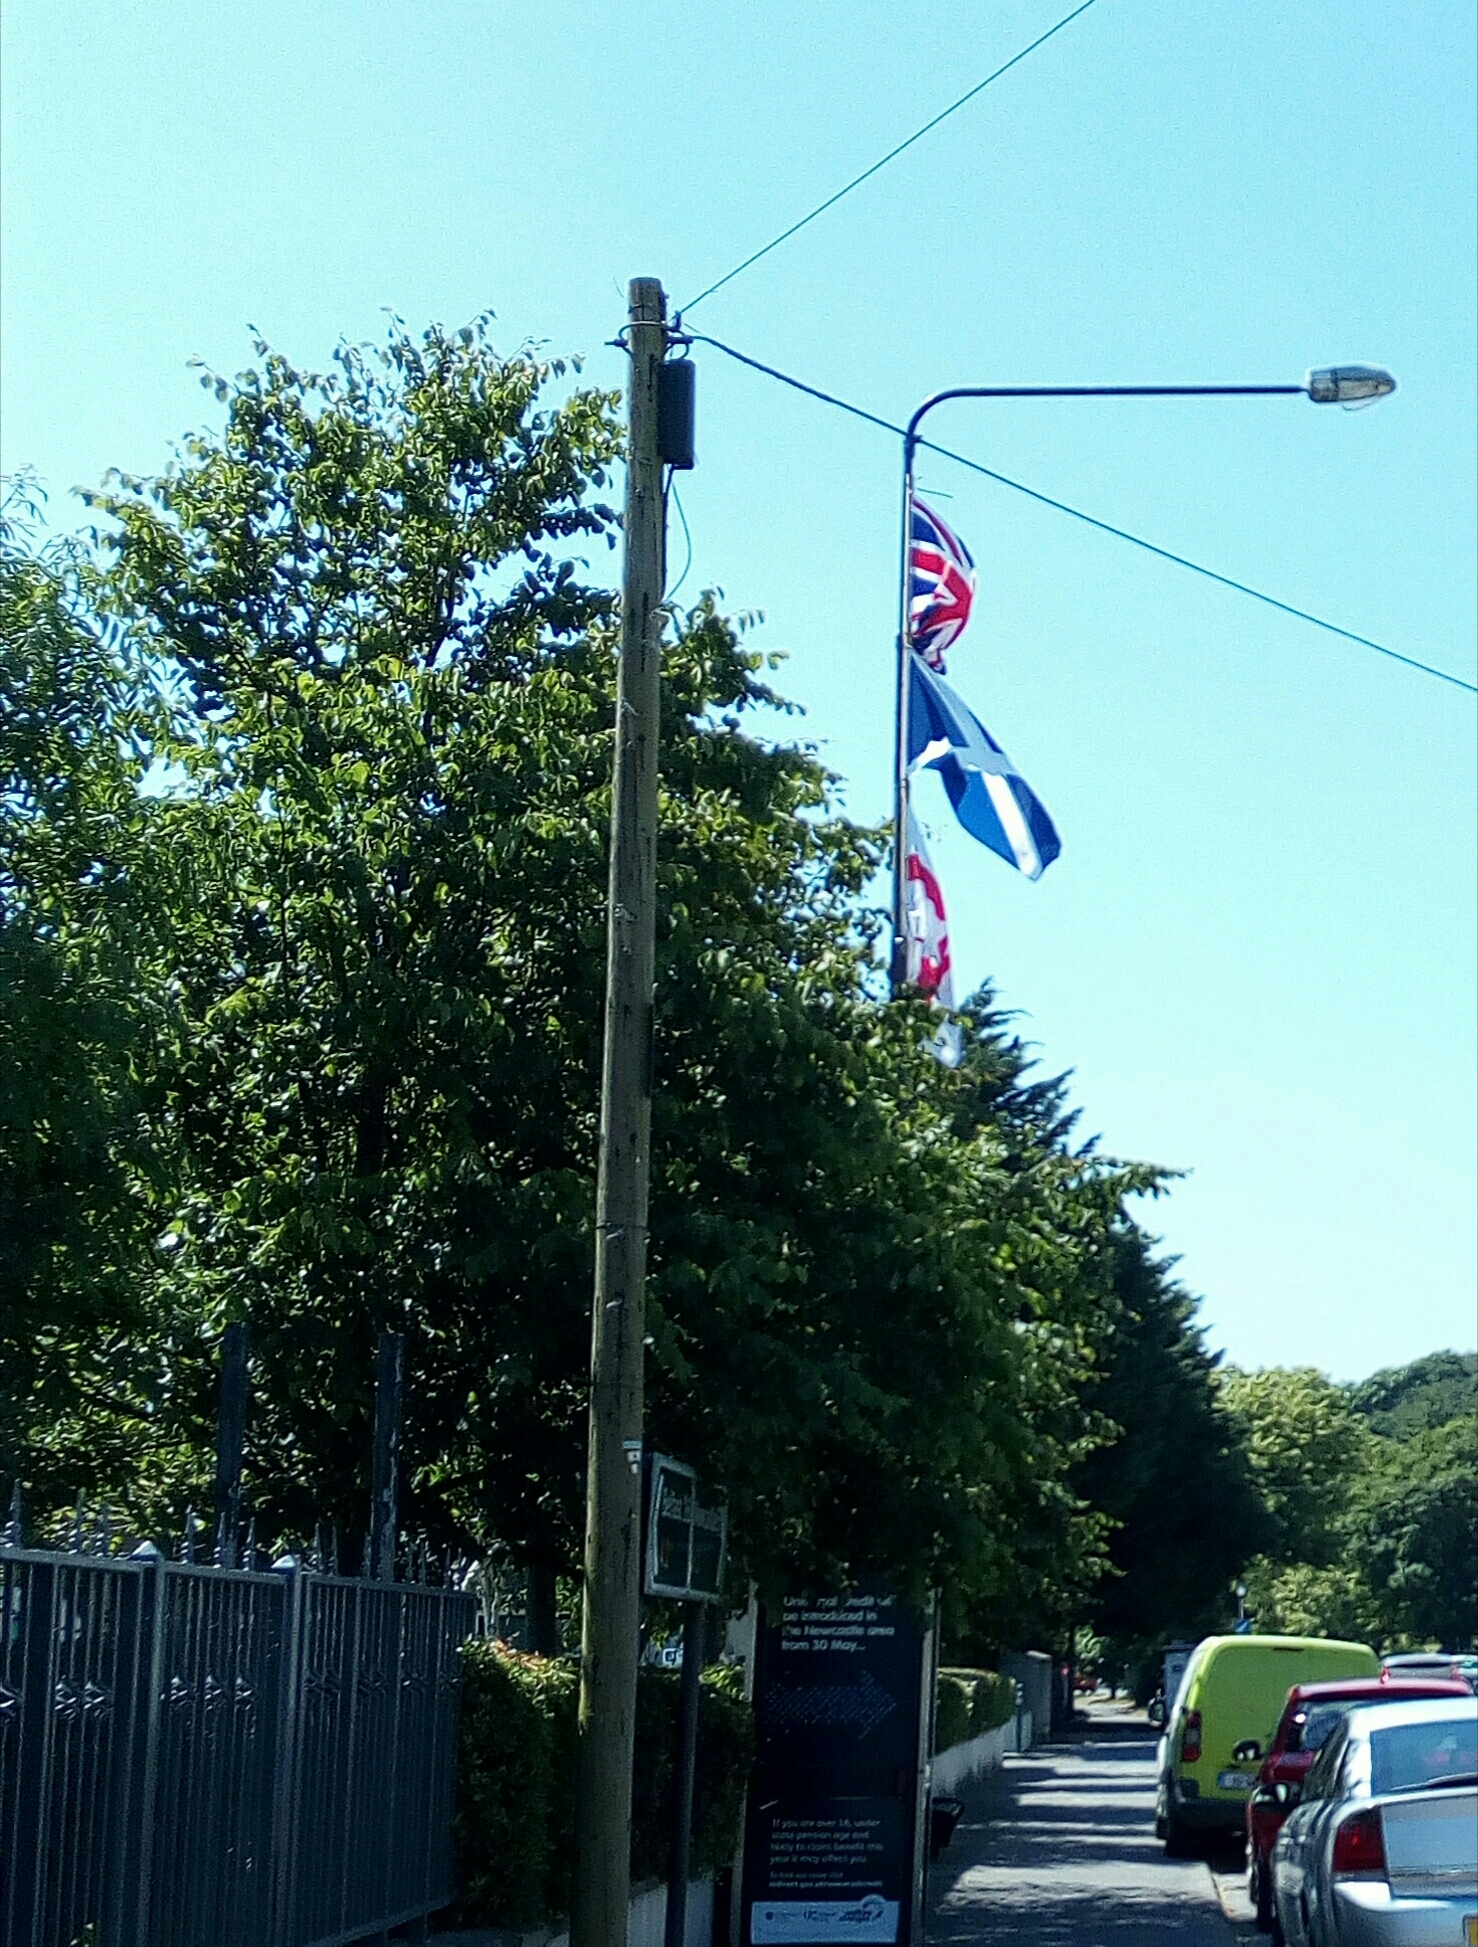 Dundrum flegs 7